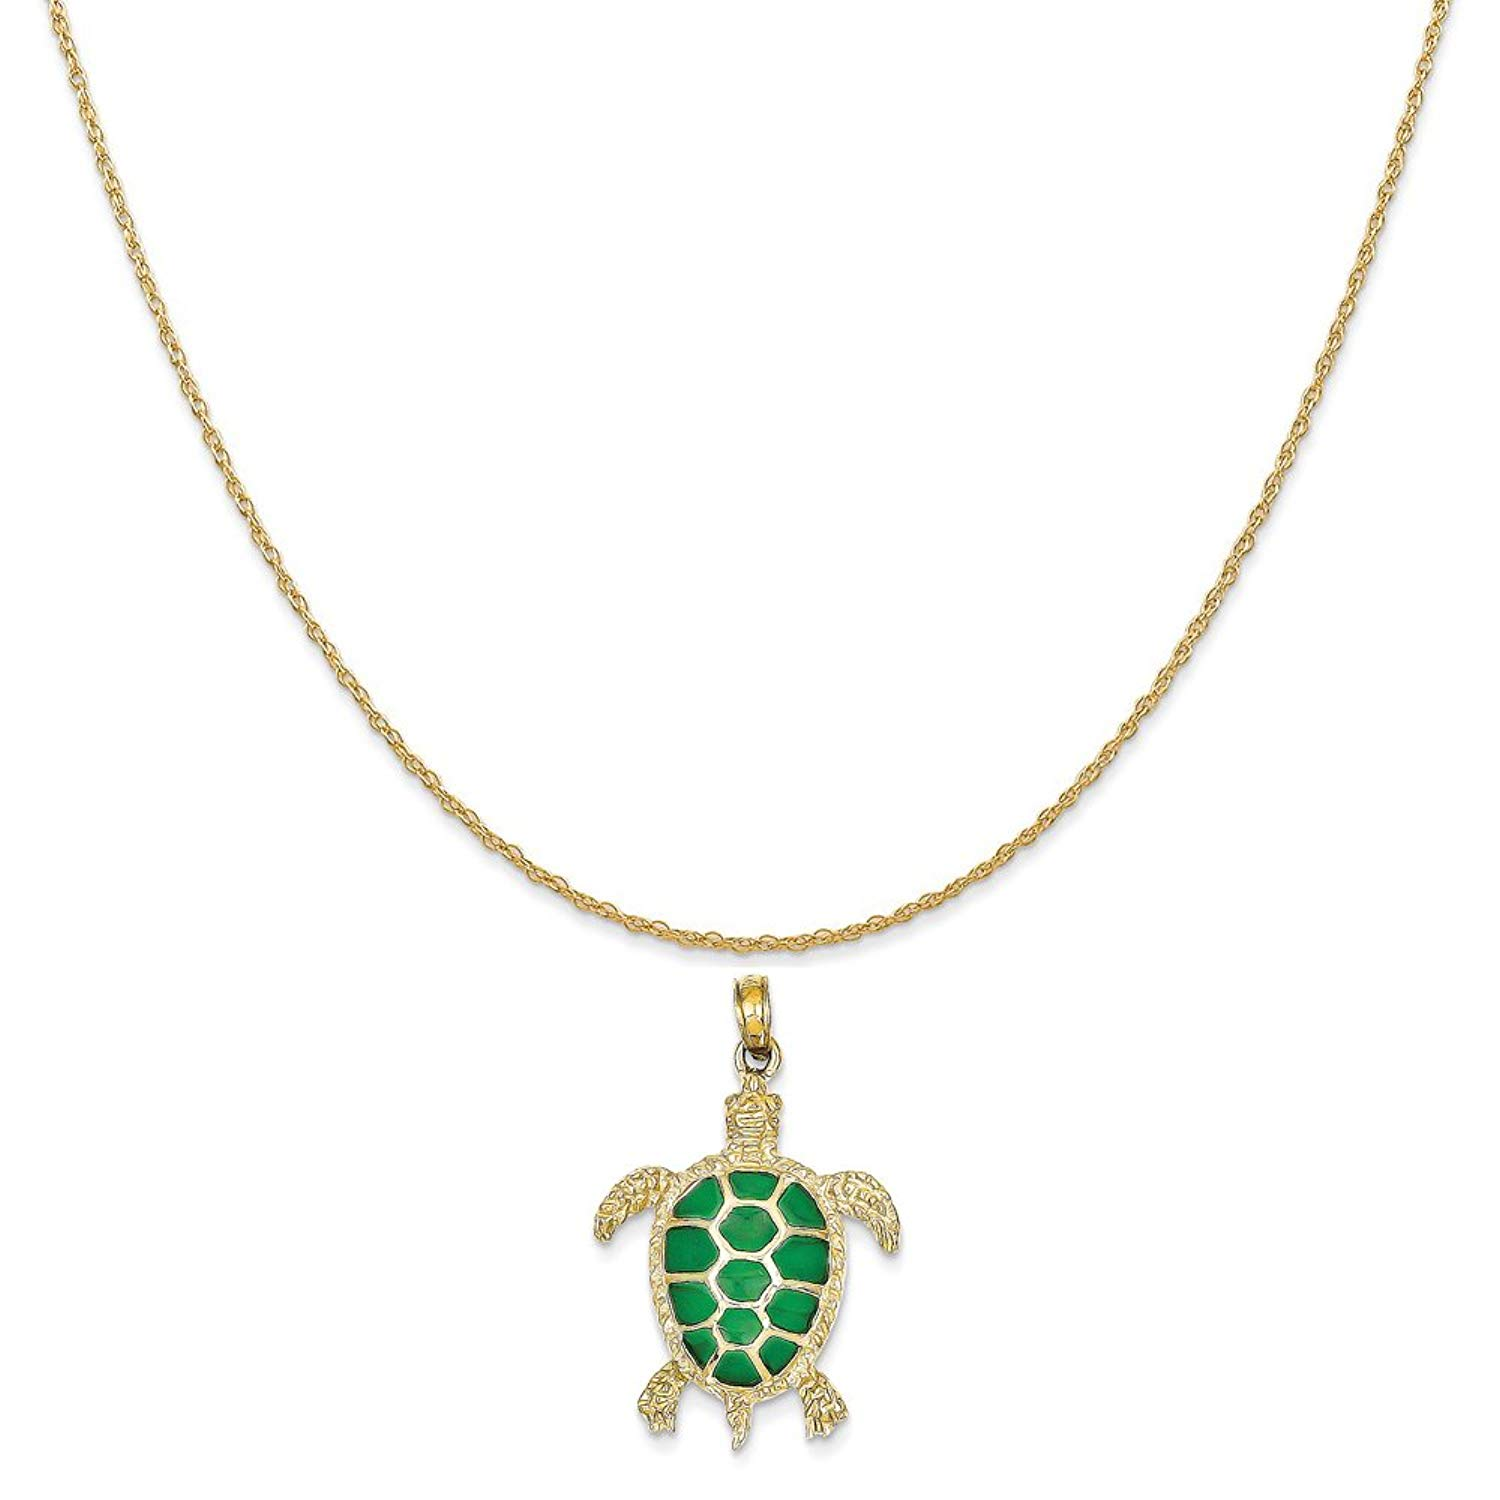 c73cb116d769c Get Quotations · 14k Yellow Gold Green Translucent Acrylic Sea Turtle  Pendant on a Rope Chain Necklace